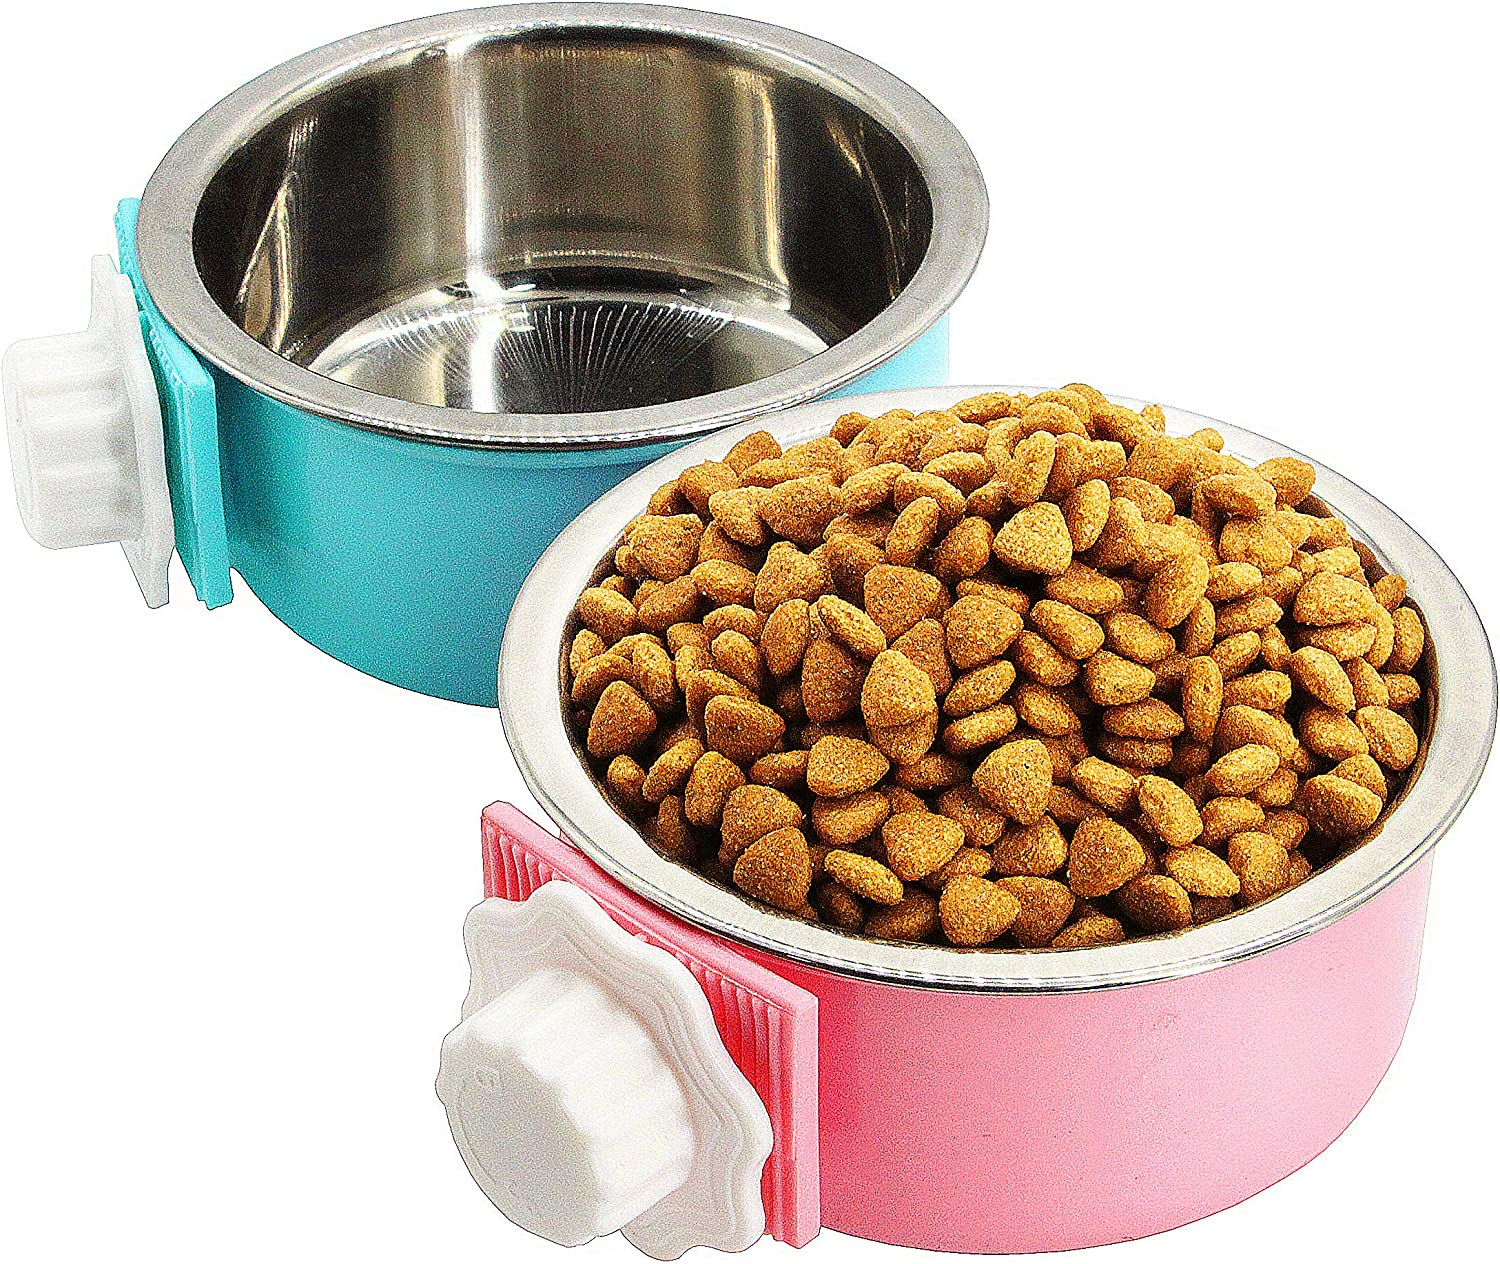 2 Pack Crate Dog Bowl, Removable and Stainless Steel Kennel Water Bowl Hanging Pet Cage Bowl Food & Water Feeder Coop Cup for Puppy Medium Dogs Birds Ferret Cat